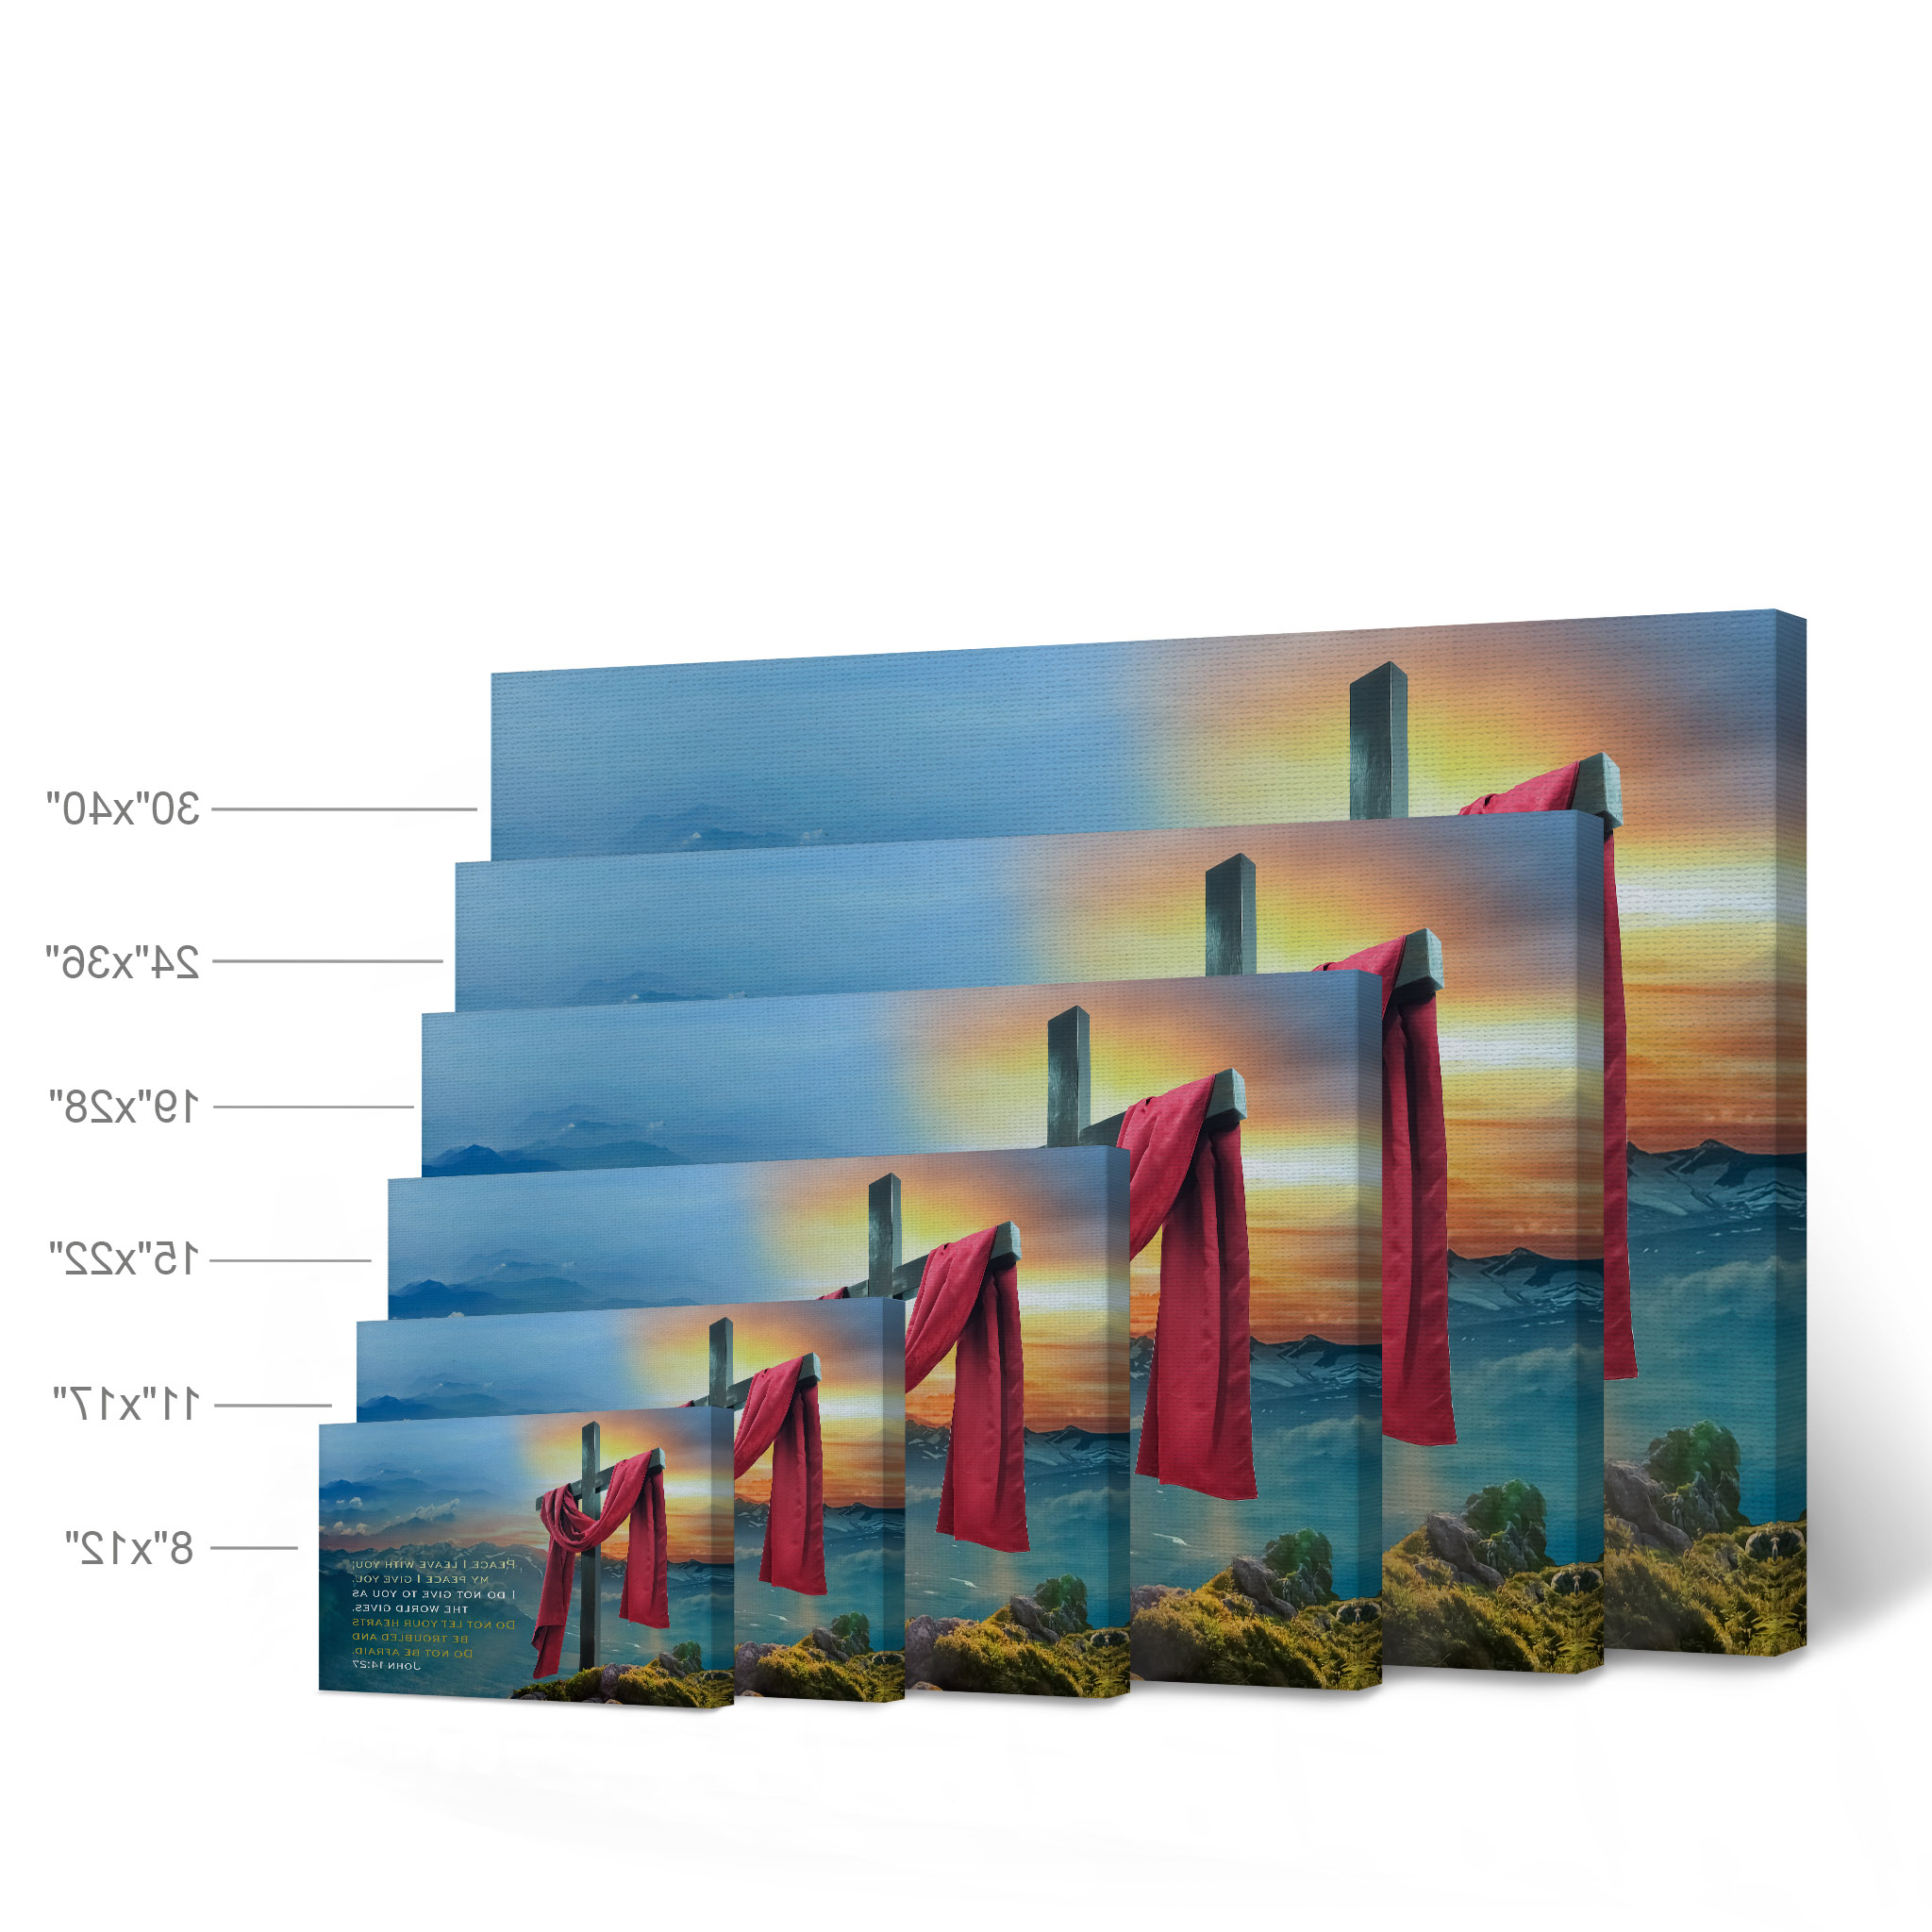 Smile Art Design Scripture Bible Verse Wall Art Canvas Print John 14:27 Do Not Be Afraid Jesus Lord God Christ Pray Cross Religious Living Room In Fashionable Peace I Leave With You Wall Hangings (View 19 of 20)